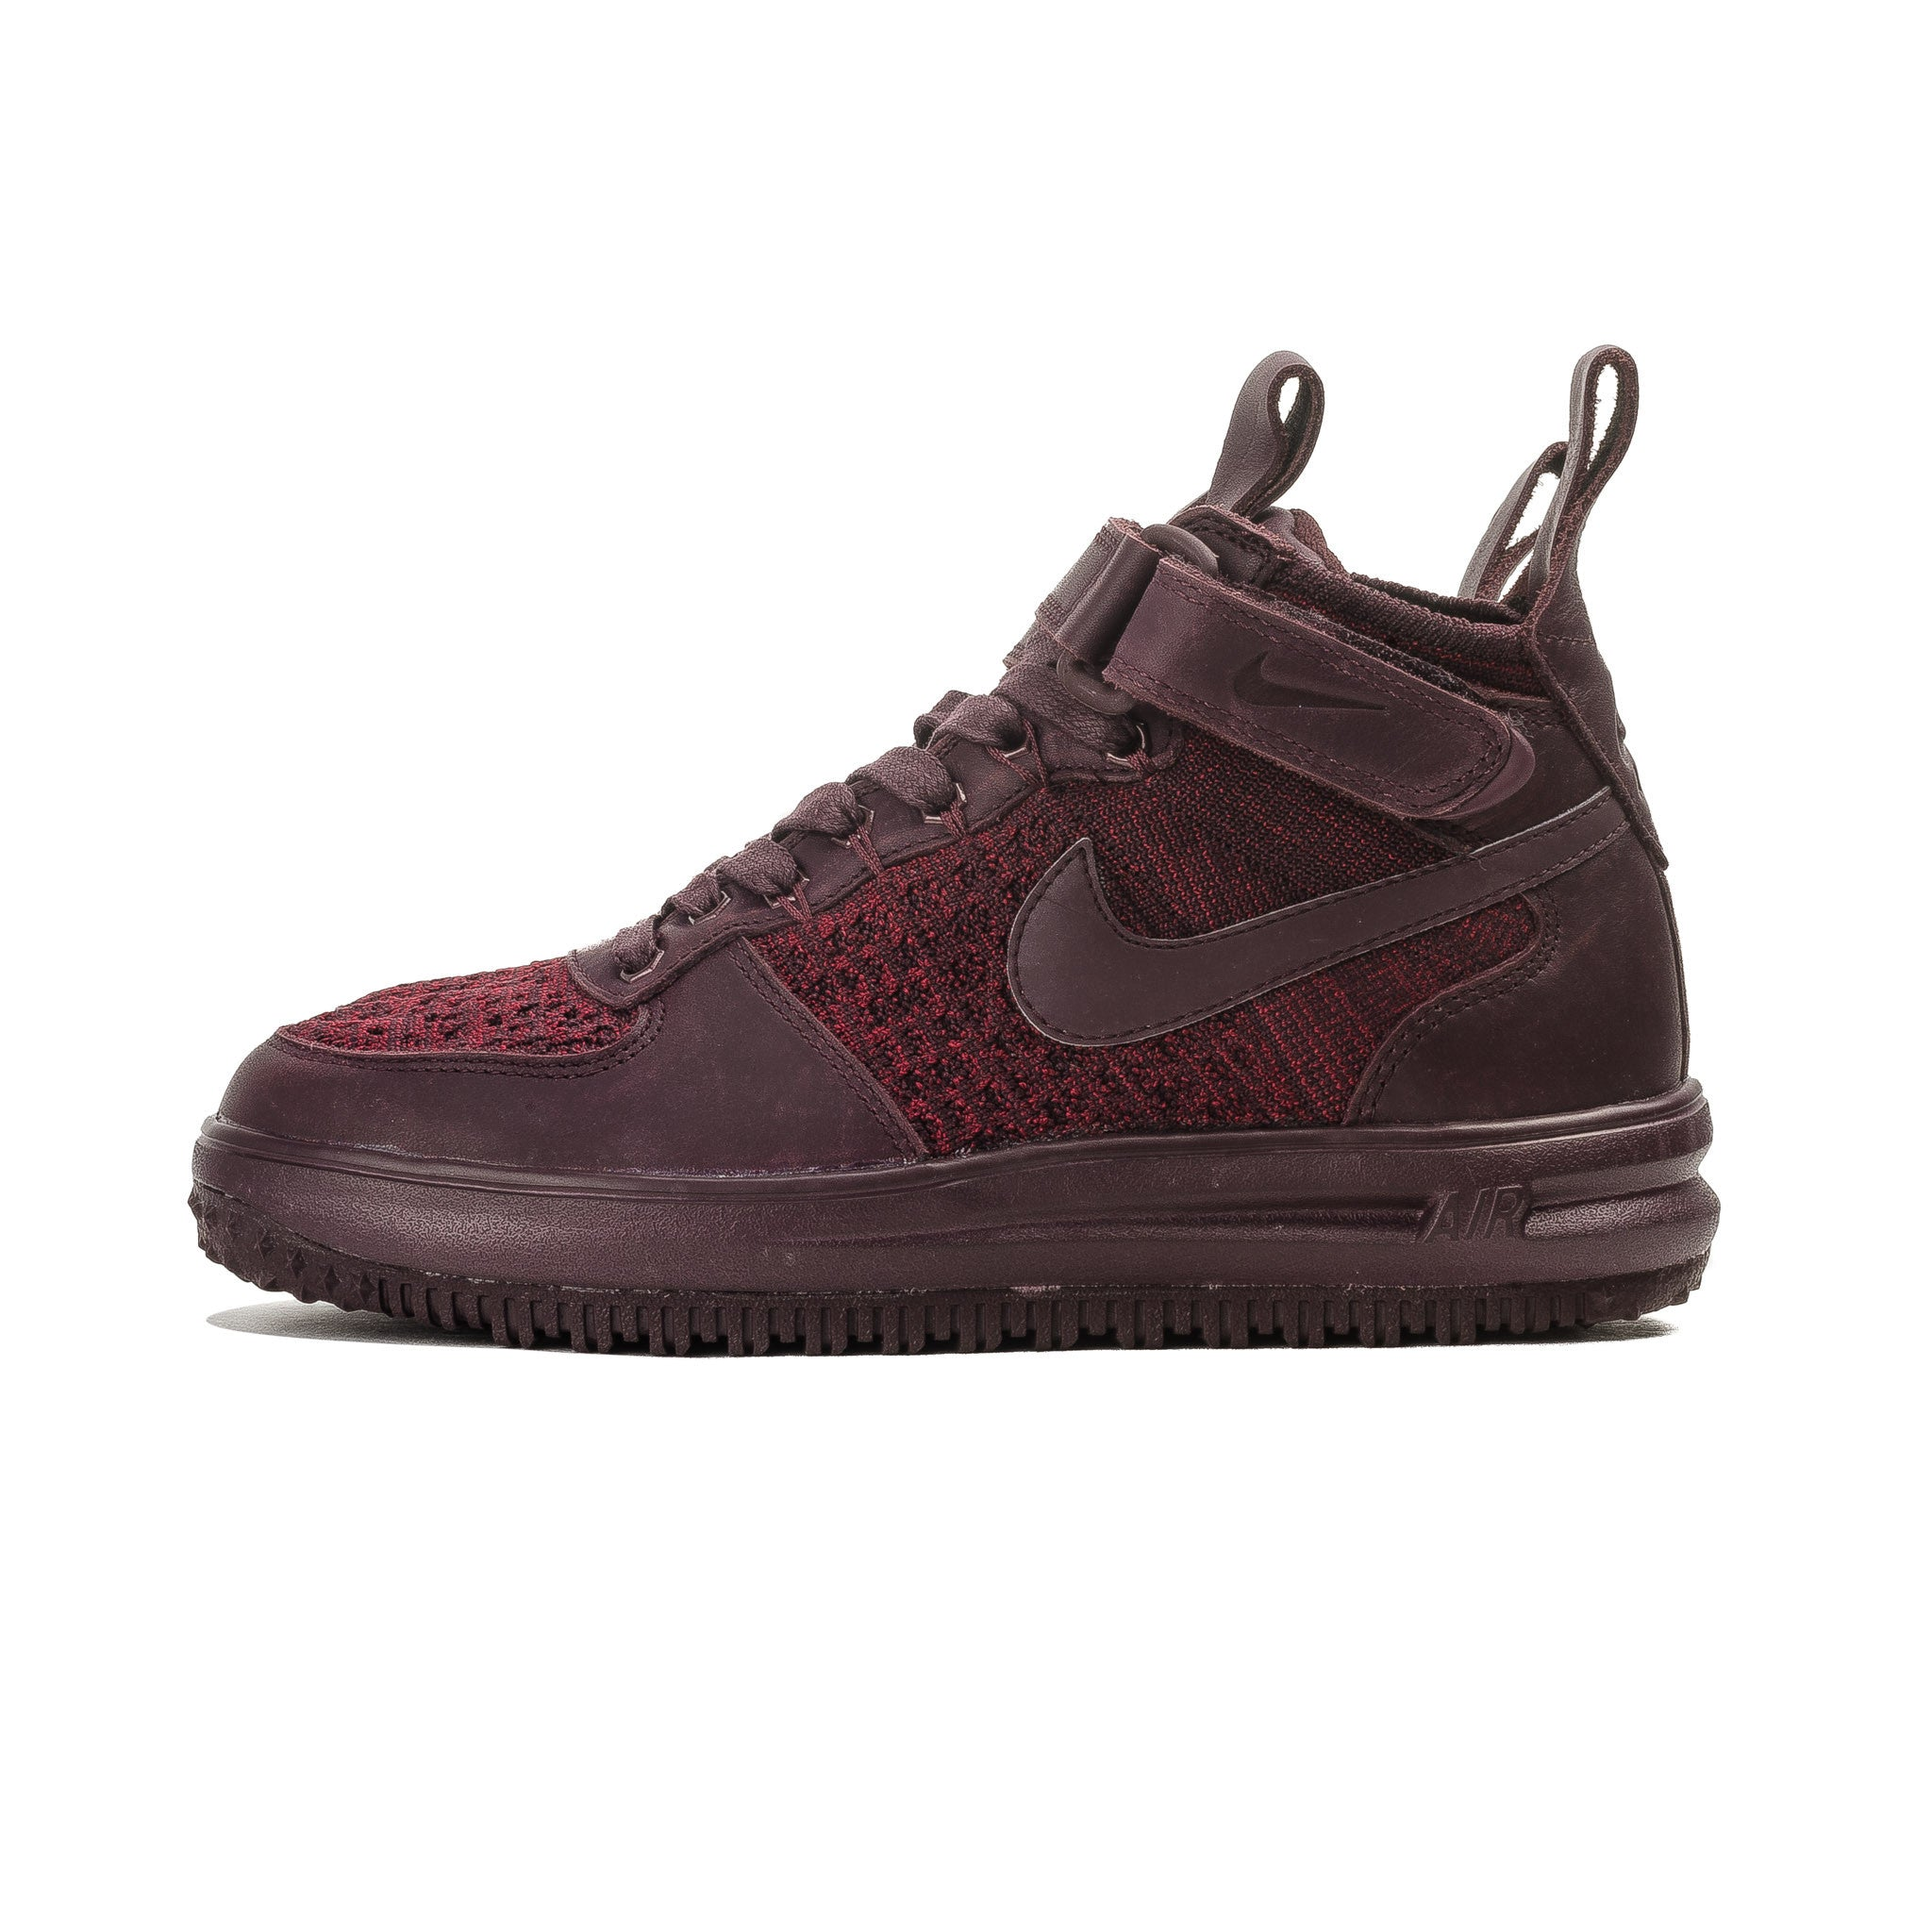 W LF Flyknit Workboot 860558-600 Burgundy